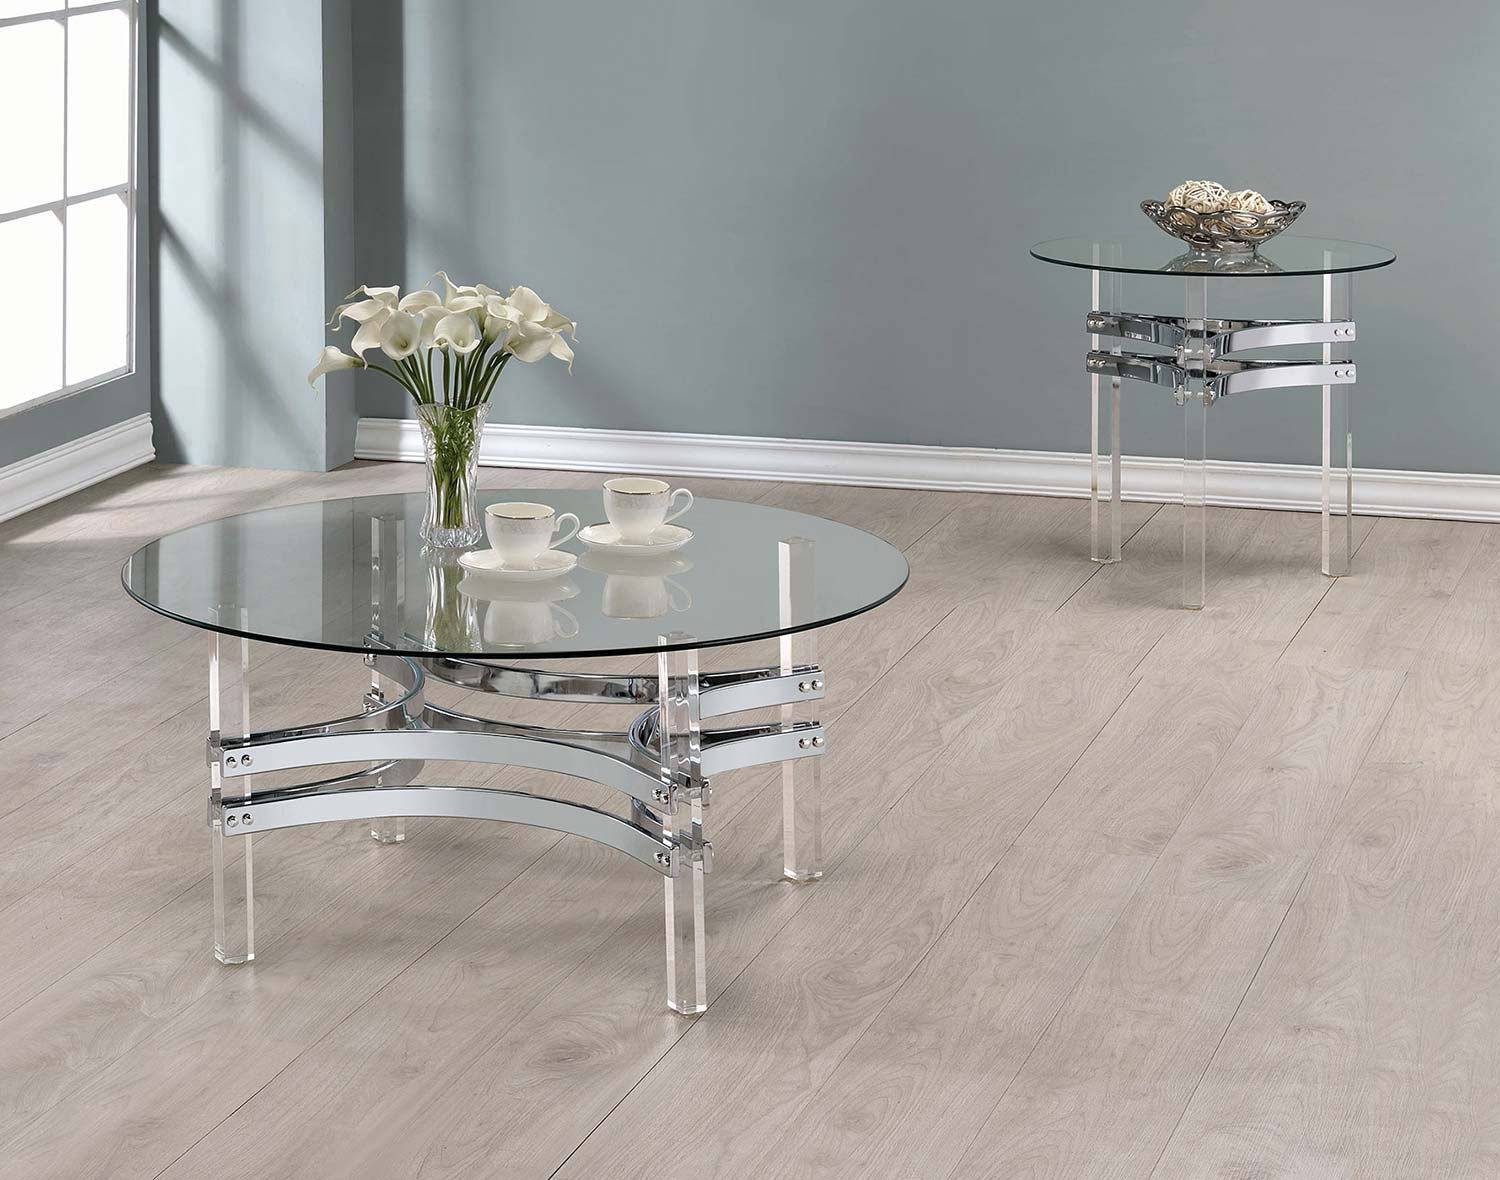 Coaster 720708 Occasional/Coffee Table Set   Chrome/Clear Acrylic